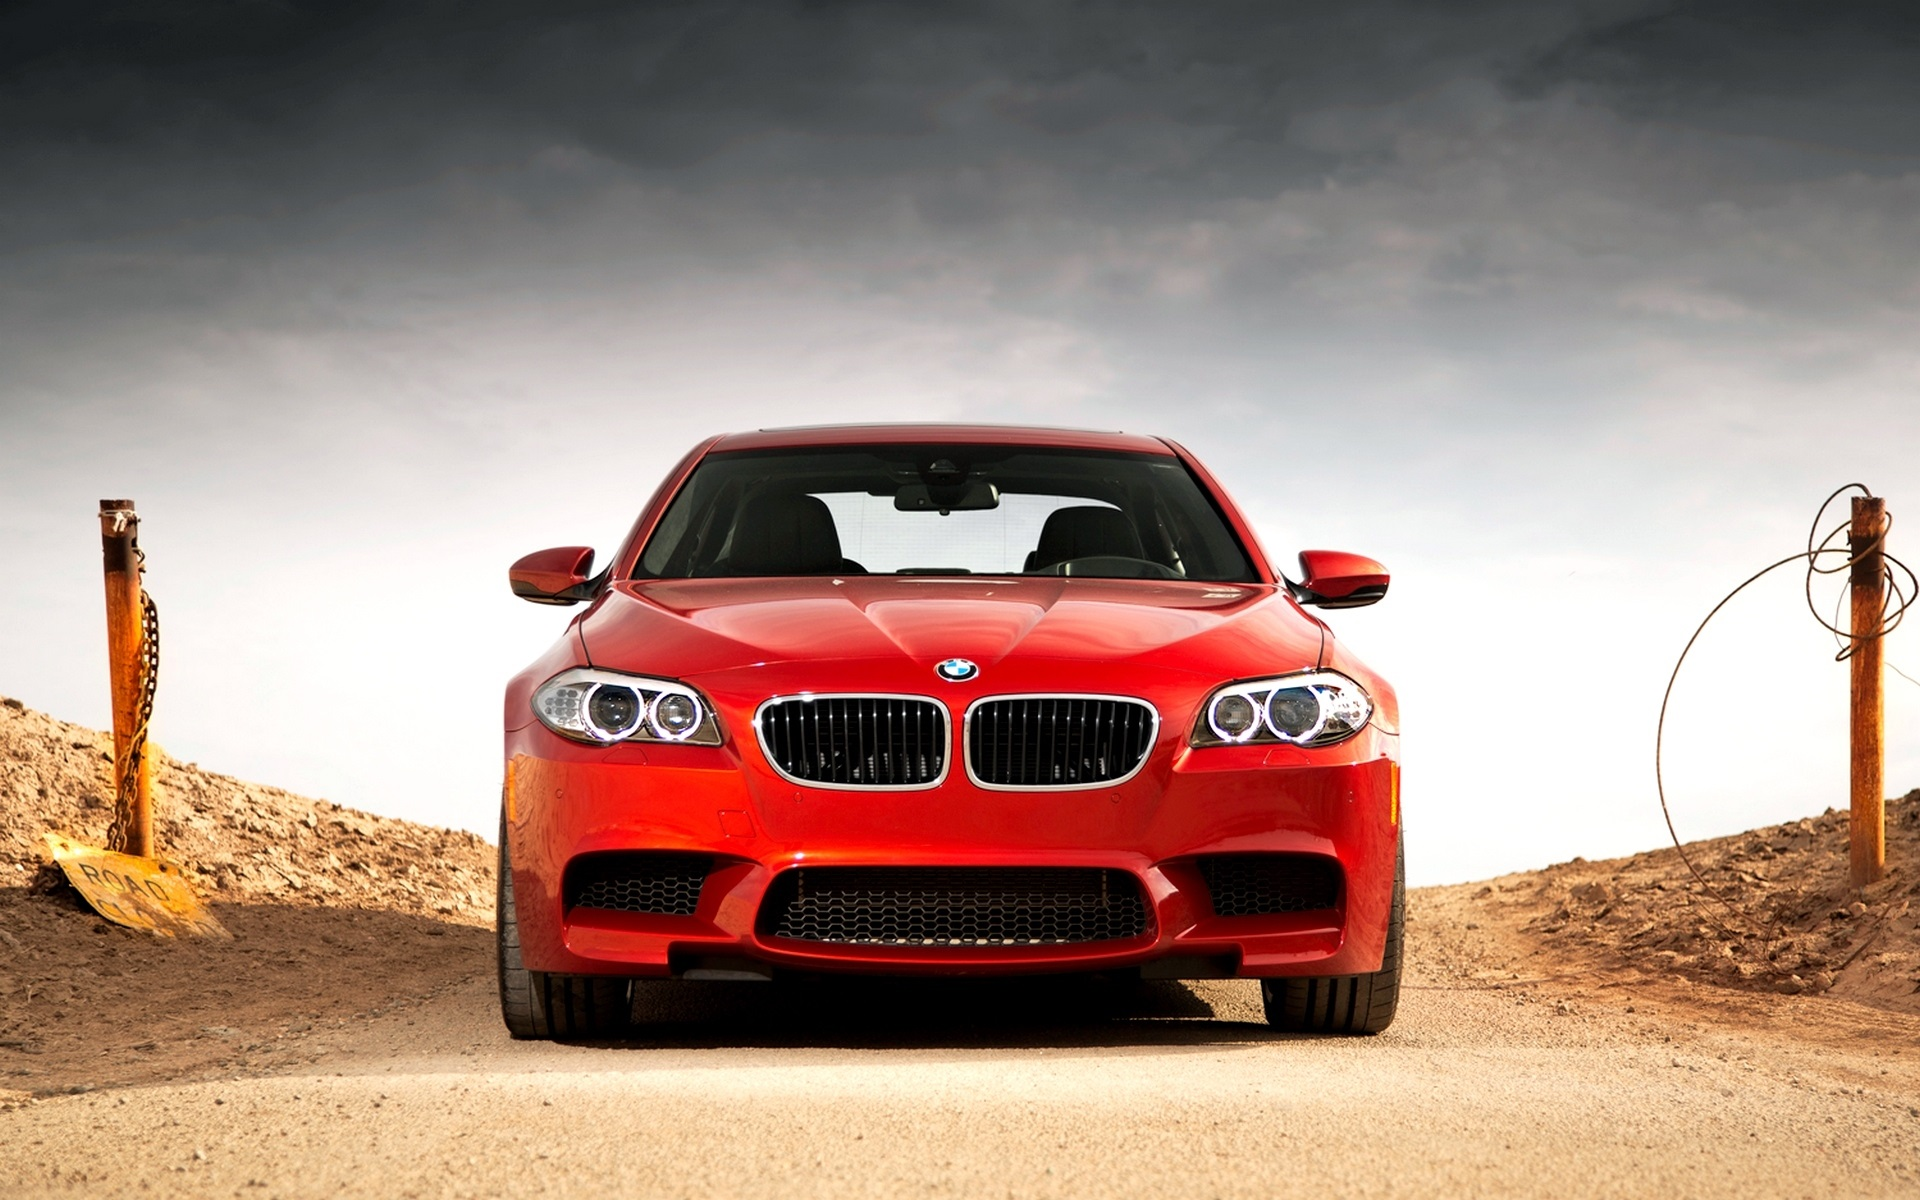 Wallpaper Bmw M5 F10 Red Car Front View 1920x1200 Hd Picture Image